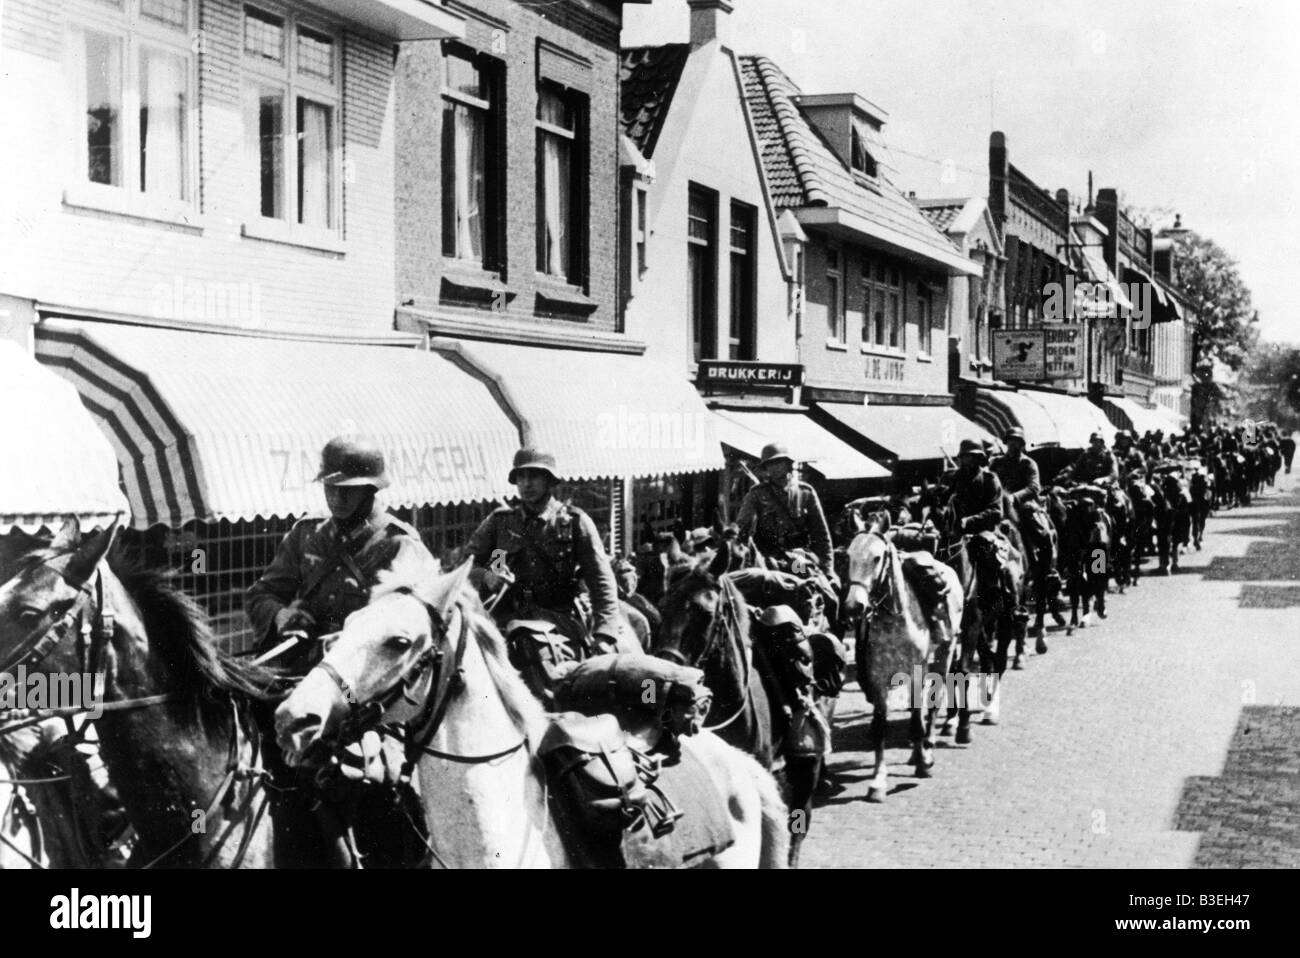 Cavalry in Holland/1940. - Stock Image